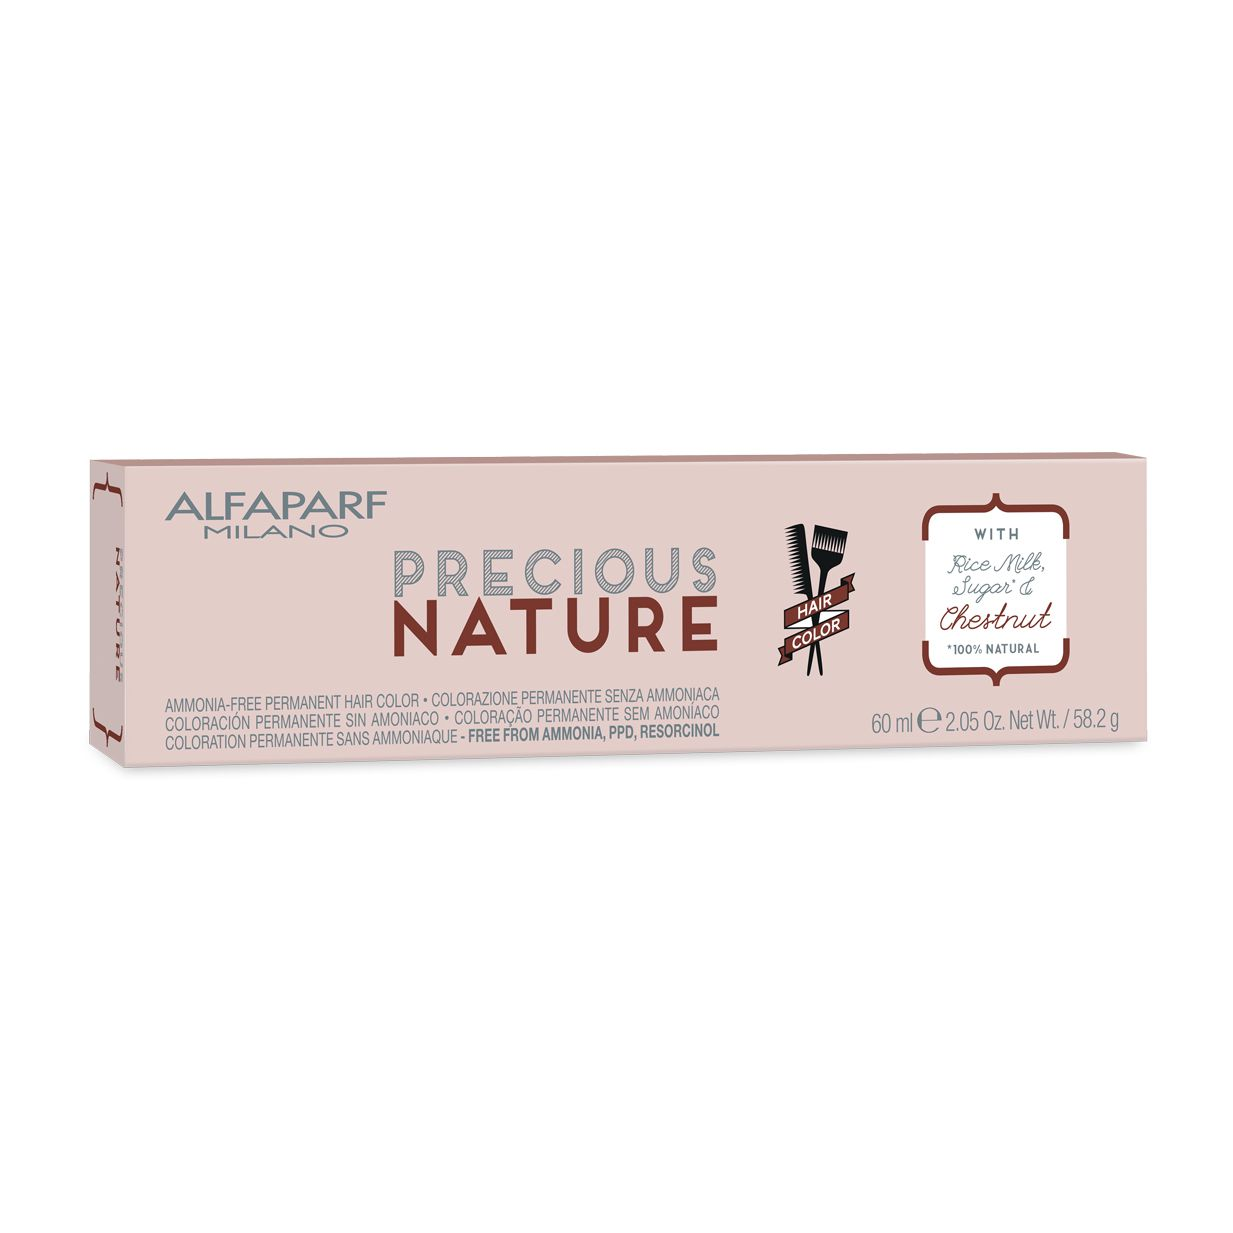 Alfaparf Milano Precious Nature Hair Color Natural Creme de Coloração 2 Escuro 60ml